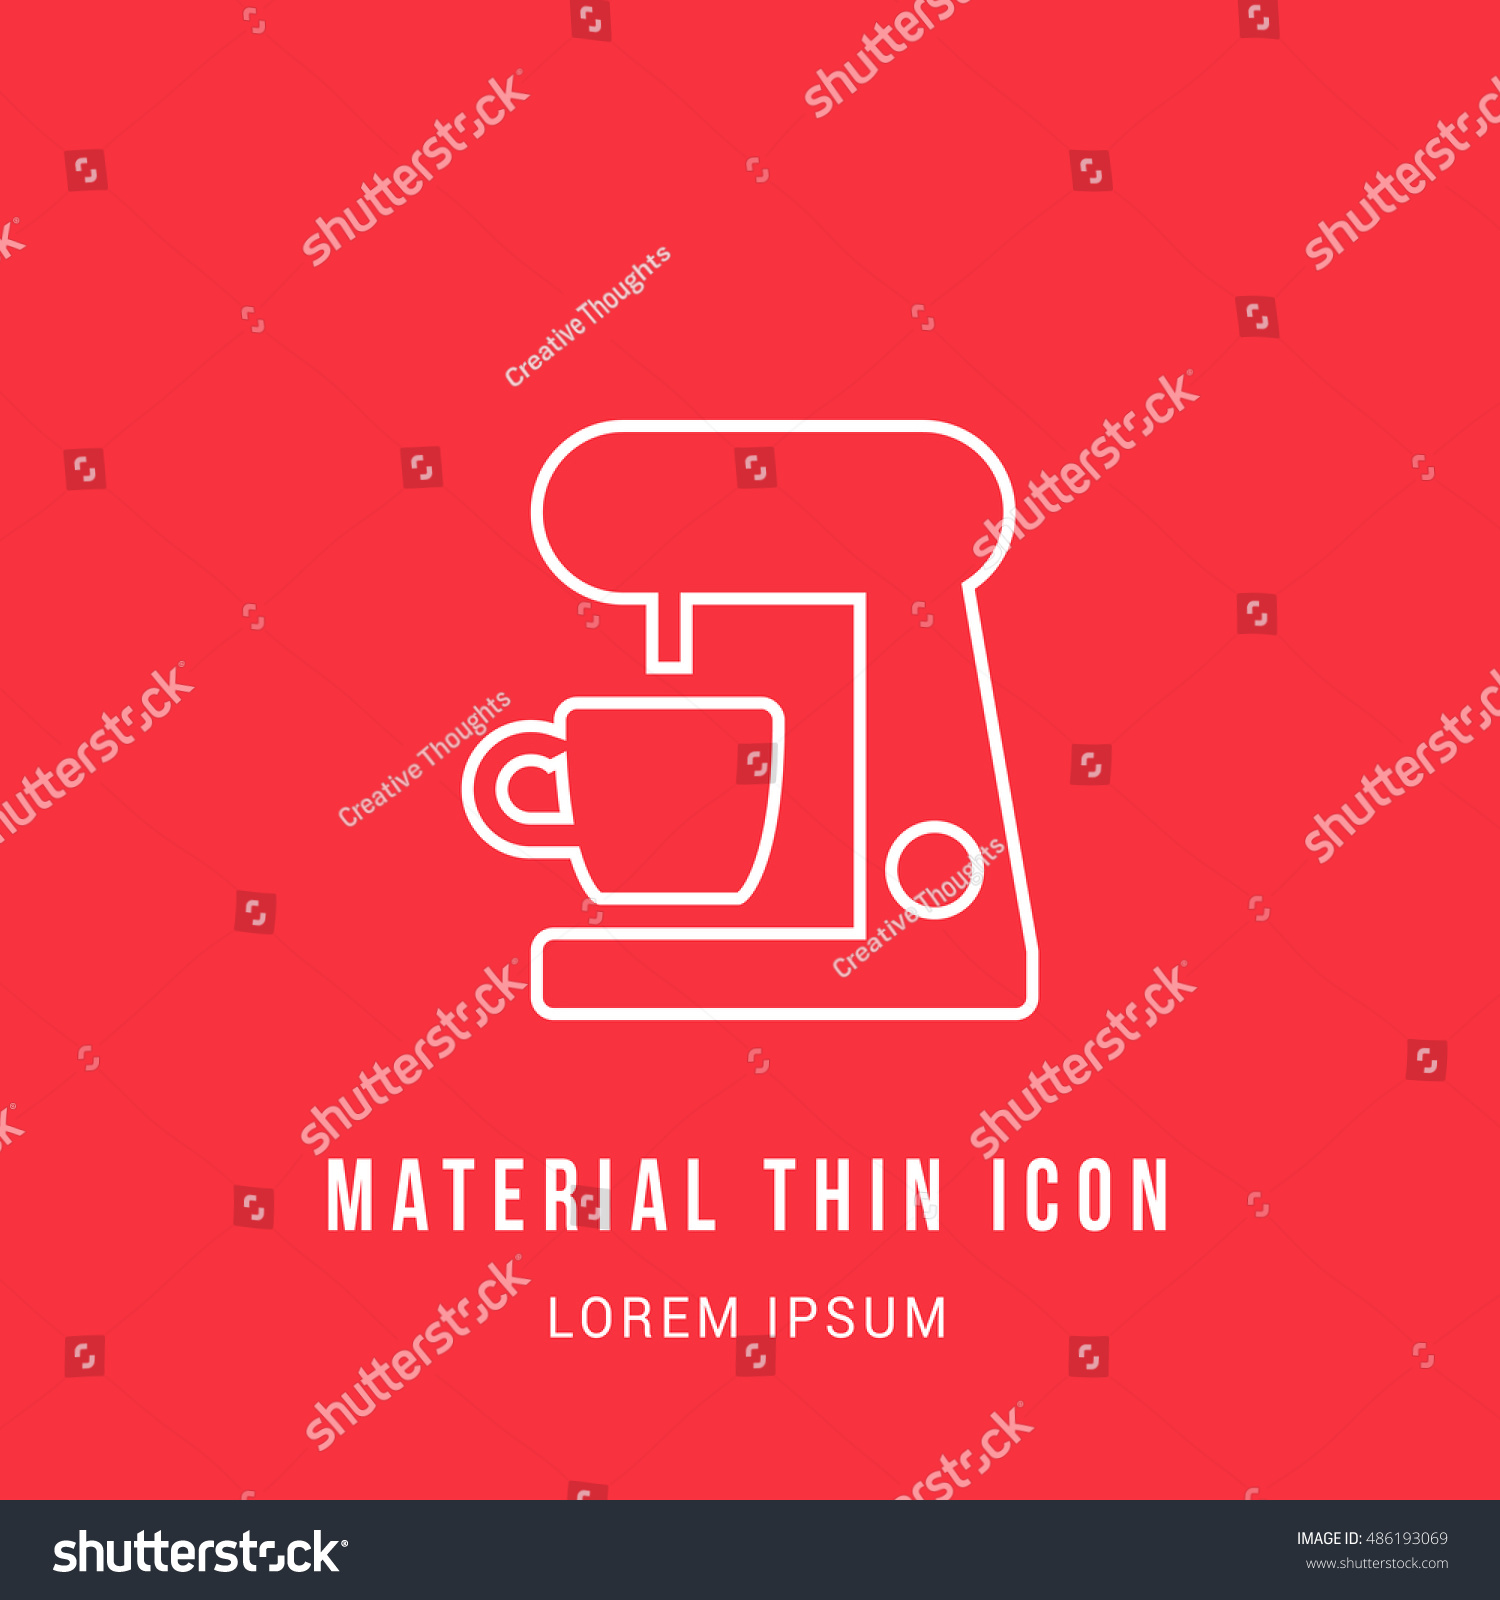 Coffee Maker Bright Red Material Designed Stock Vector (Royalty Free